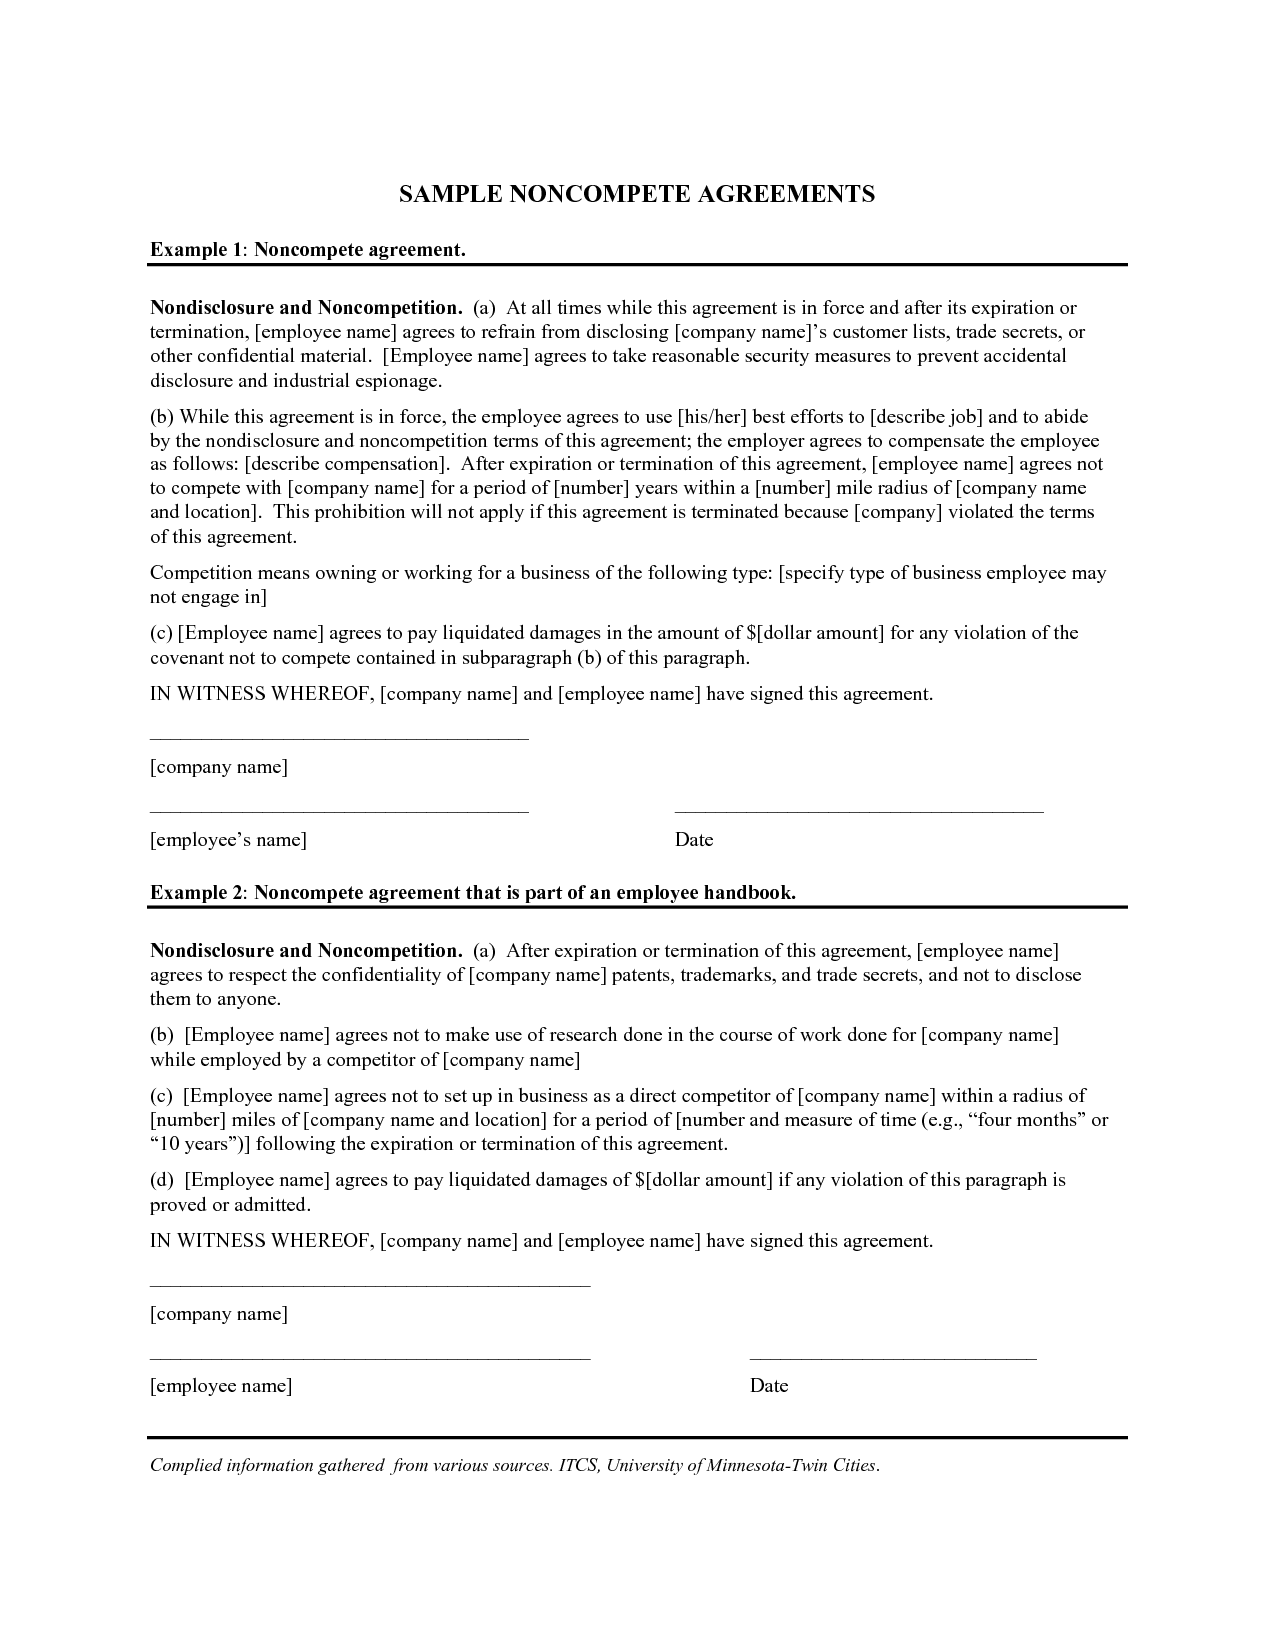 Non Compete Agreement Example Free Printable Documents Words Agreement Competing